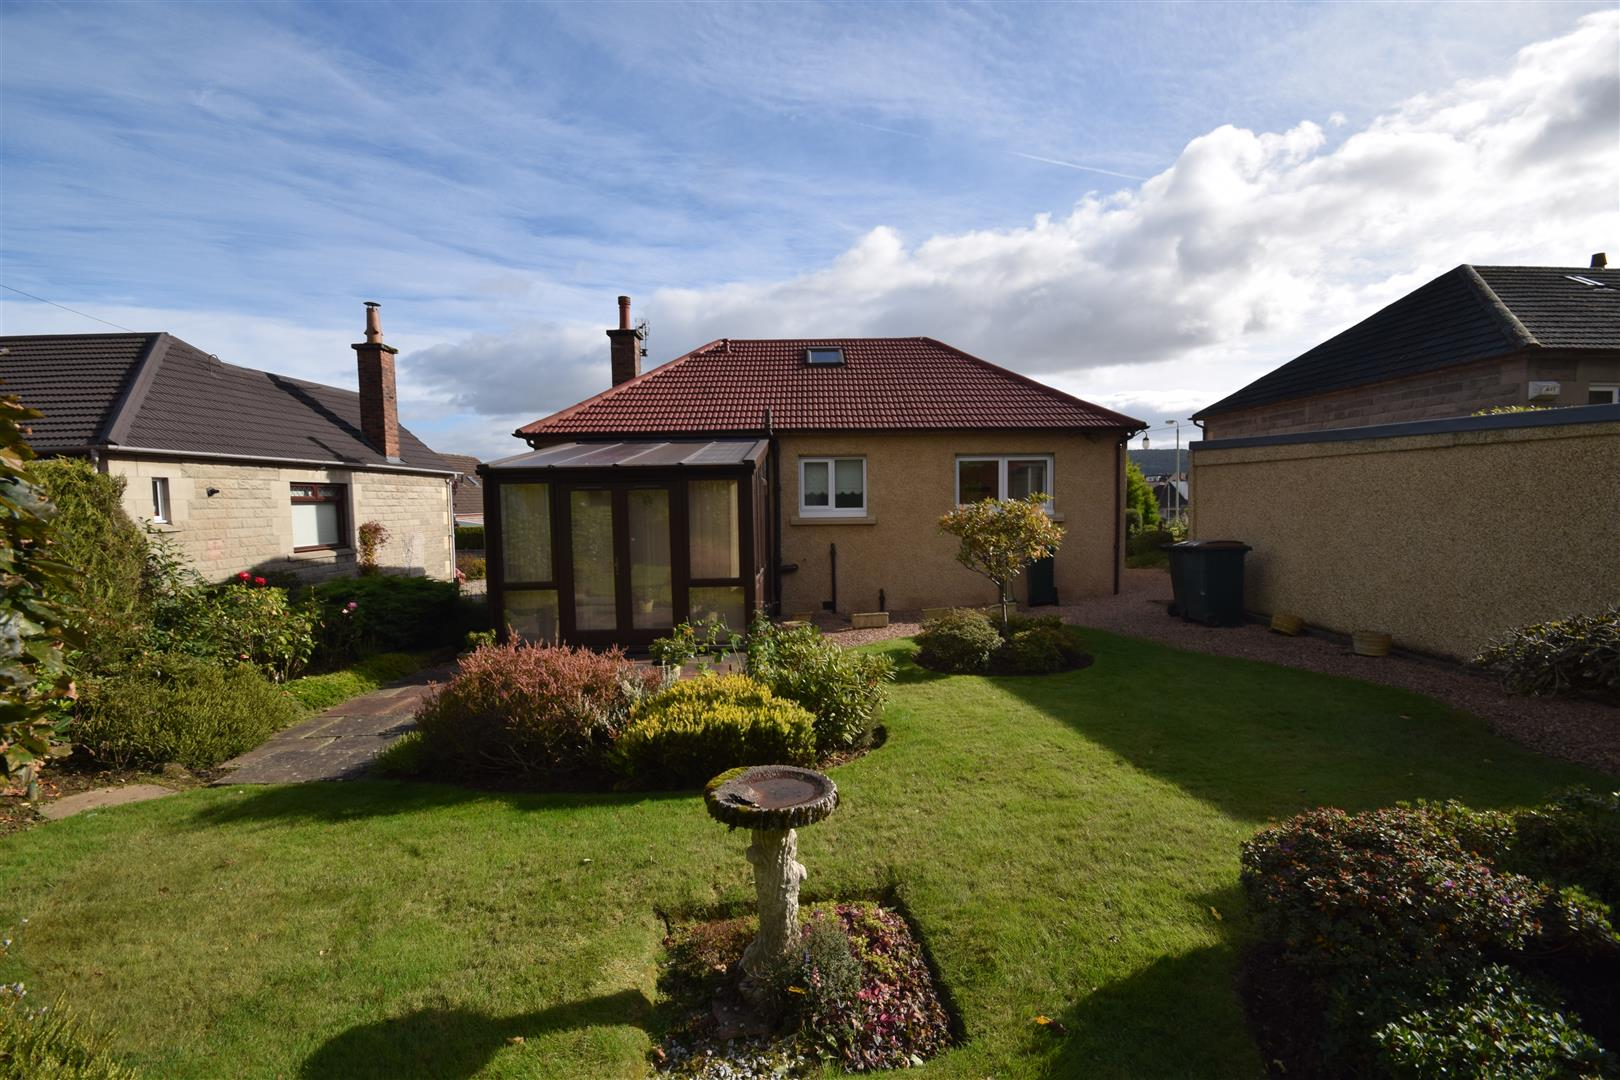 16, Tibbermore Gardens, Perthshire, PH1 2BX, UK